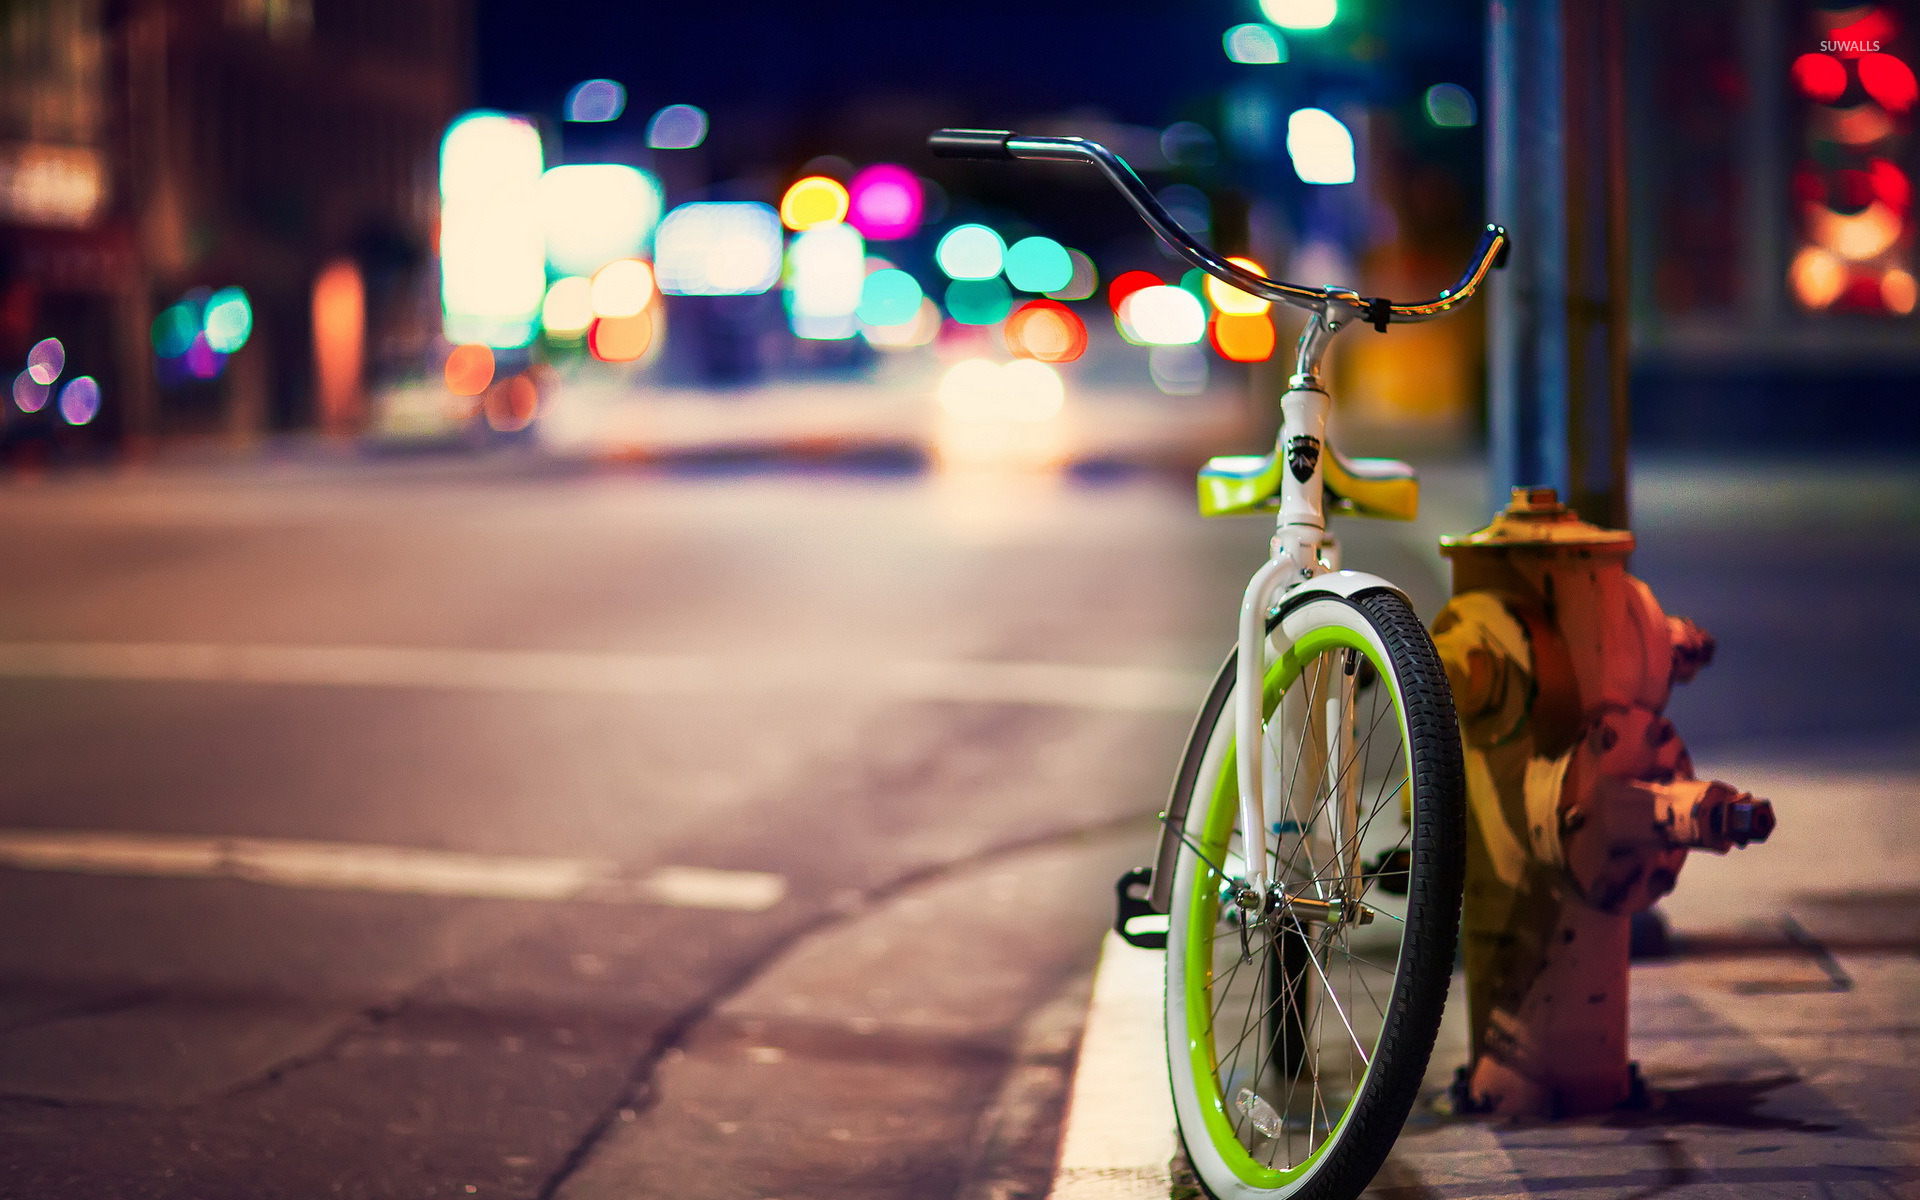 Bicycle On The City Street Wallpaper